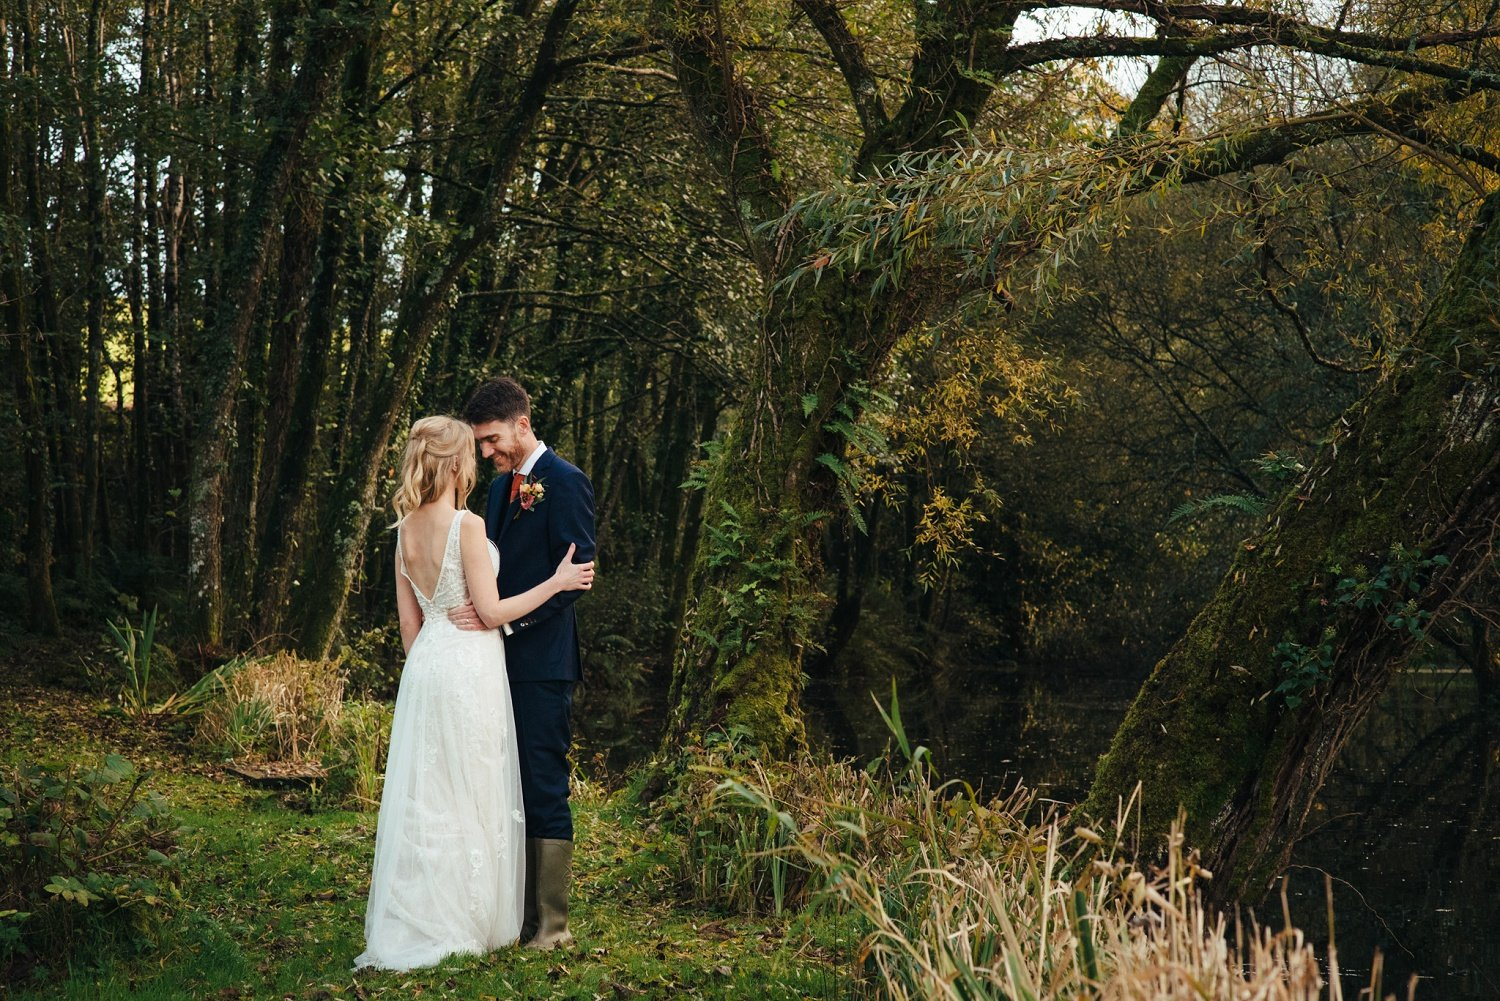 Bohemian flowy wedding dress and a beautiful blonde bride in her groom's arms by a lake